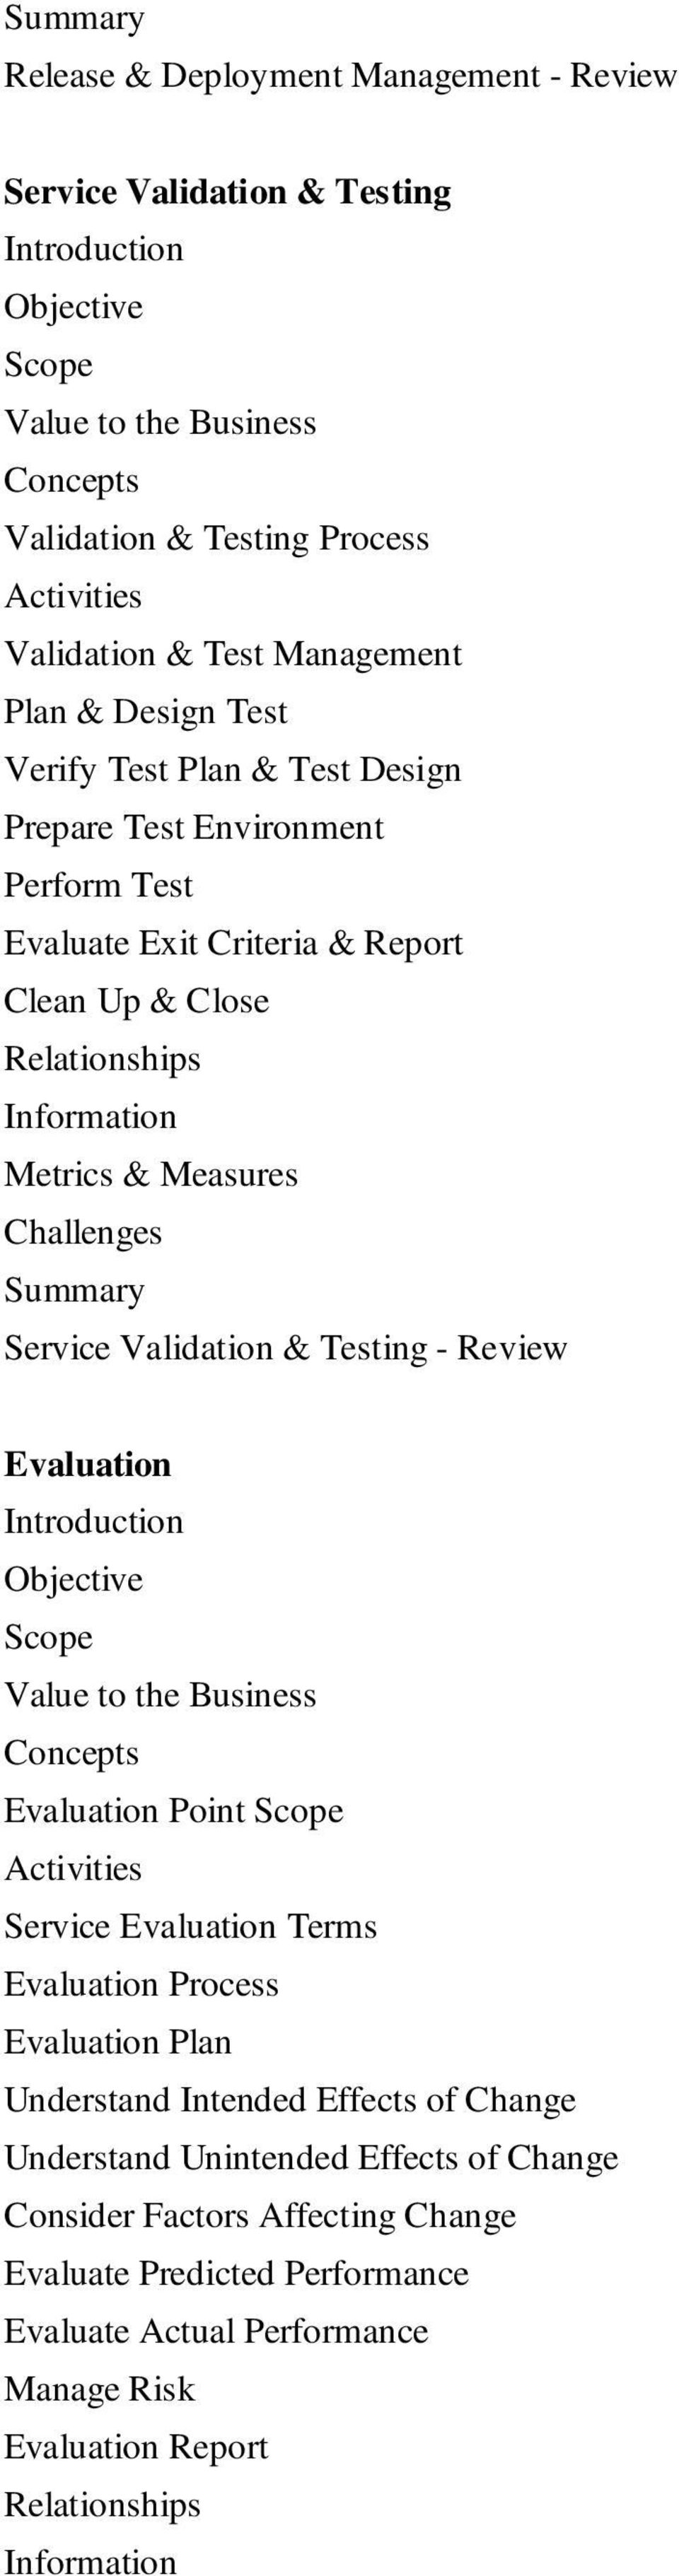 Review Evaluation Evaluation Point Activities Service Evaluation Terms Evaluation Process Evaluation Plan Understand Intended Effects of Change